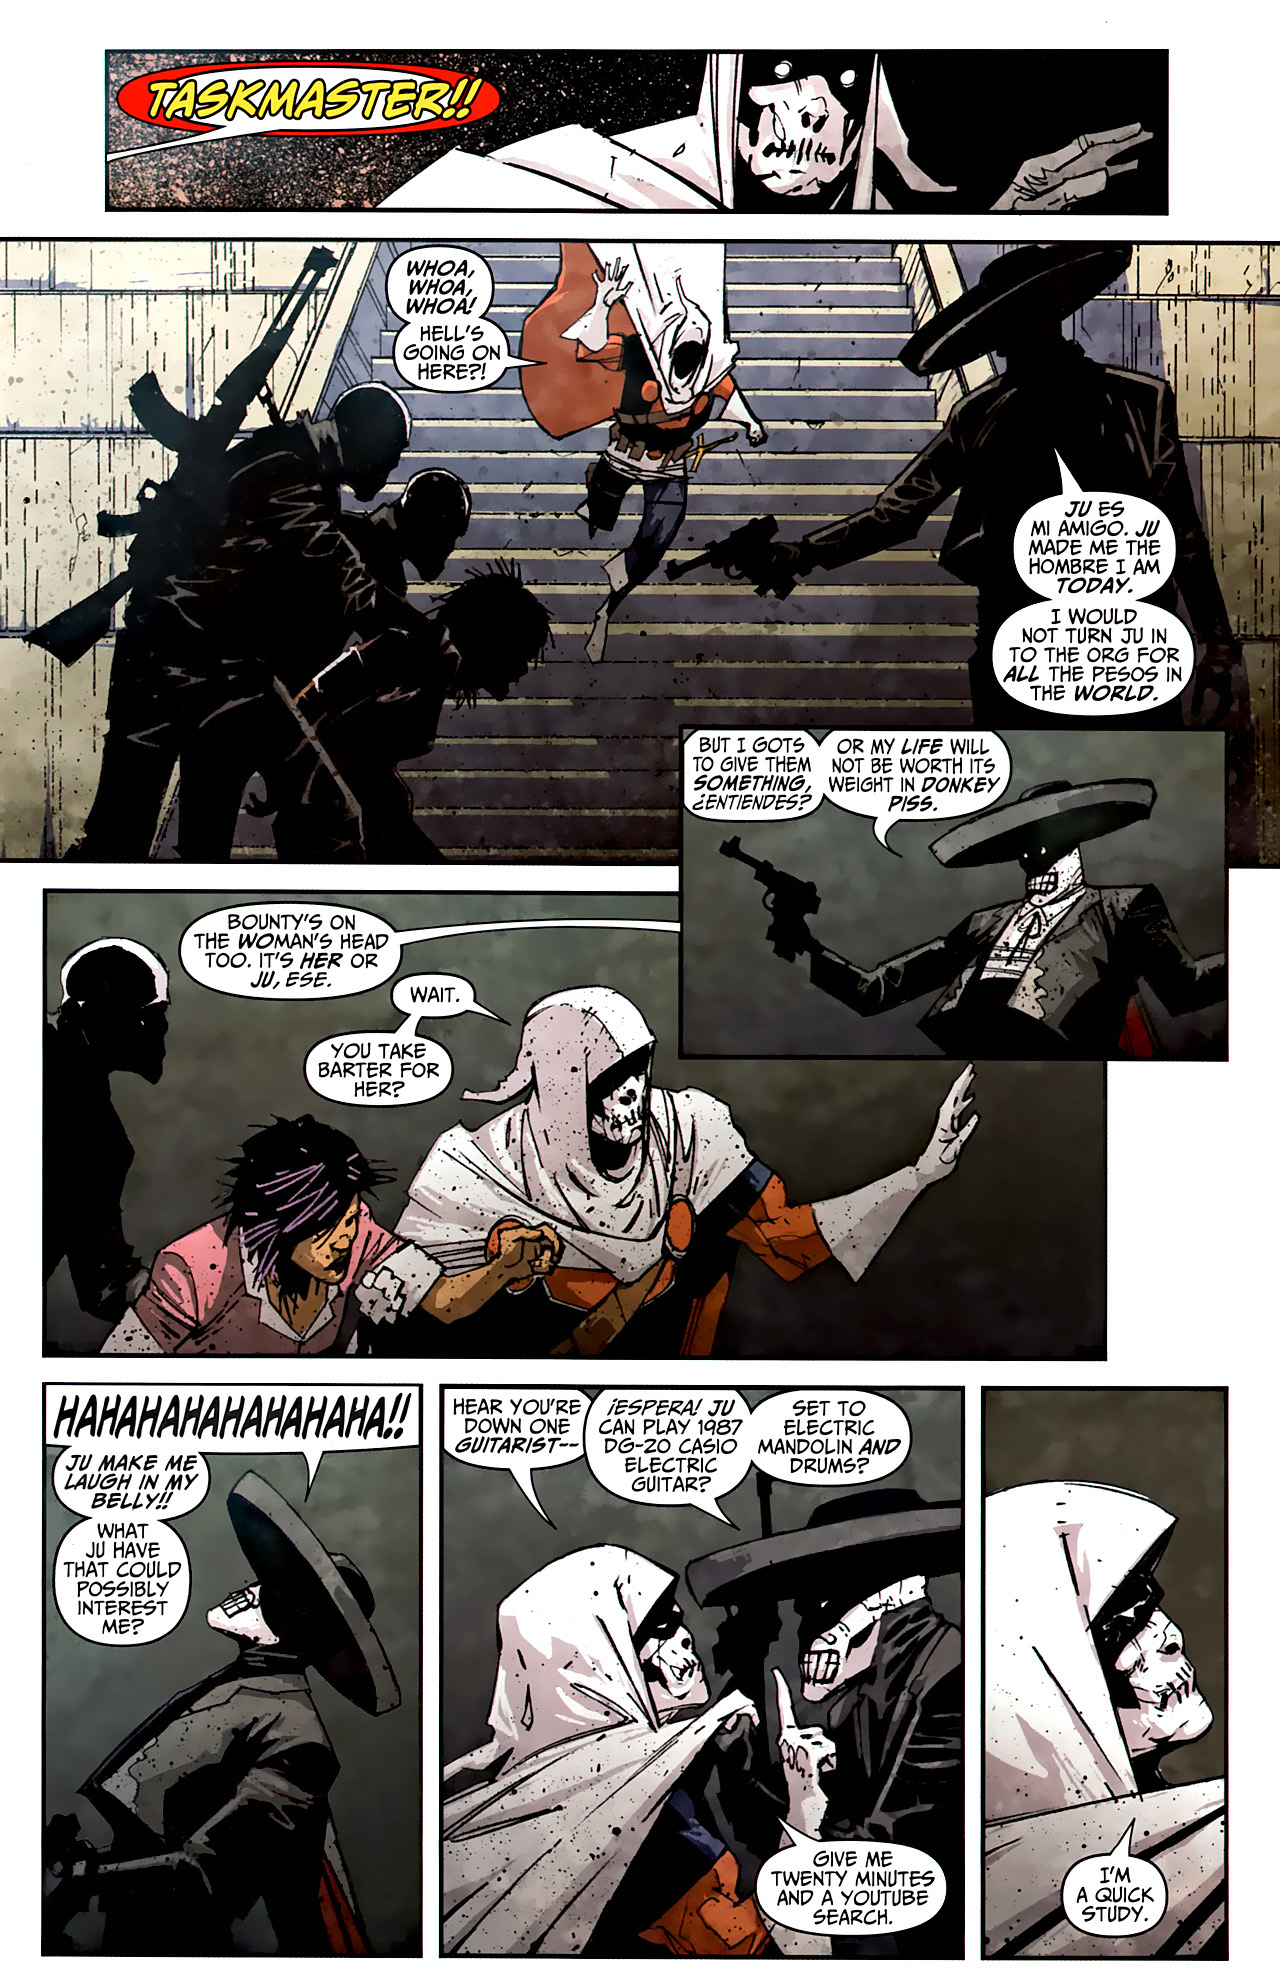 Read online Taskmaster (2010) comic -  Issue #2 - 15